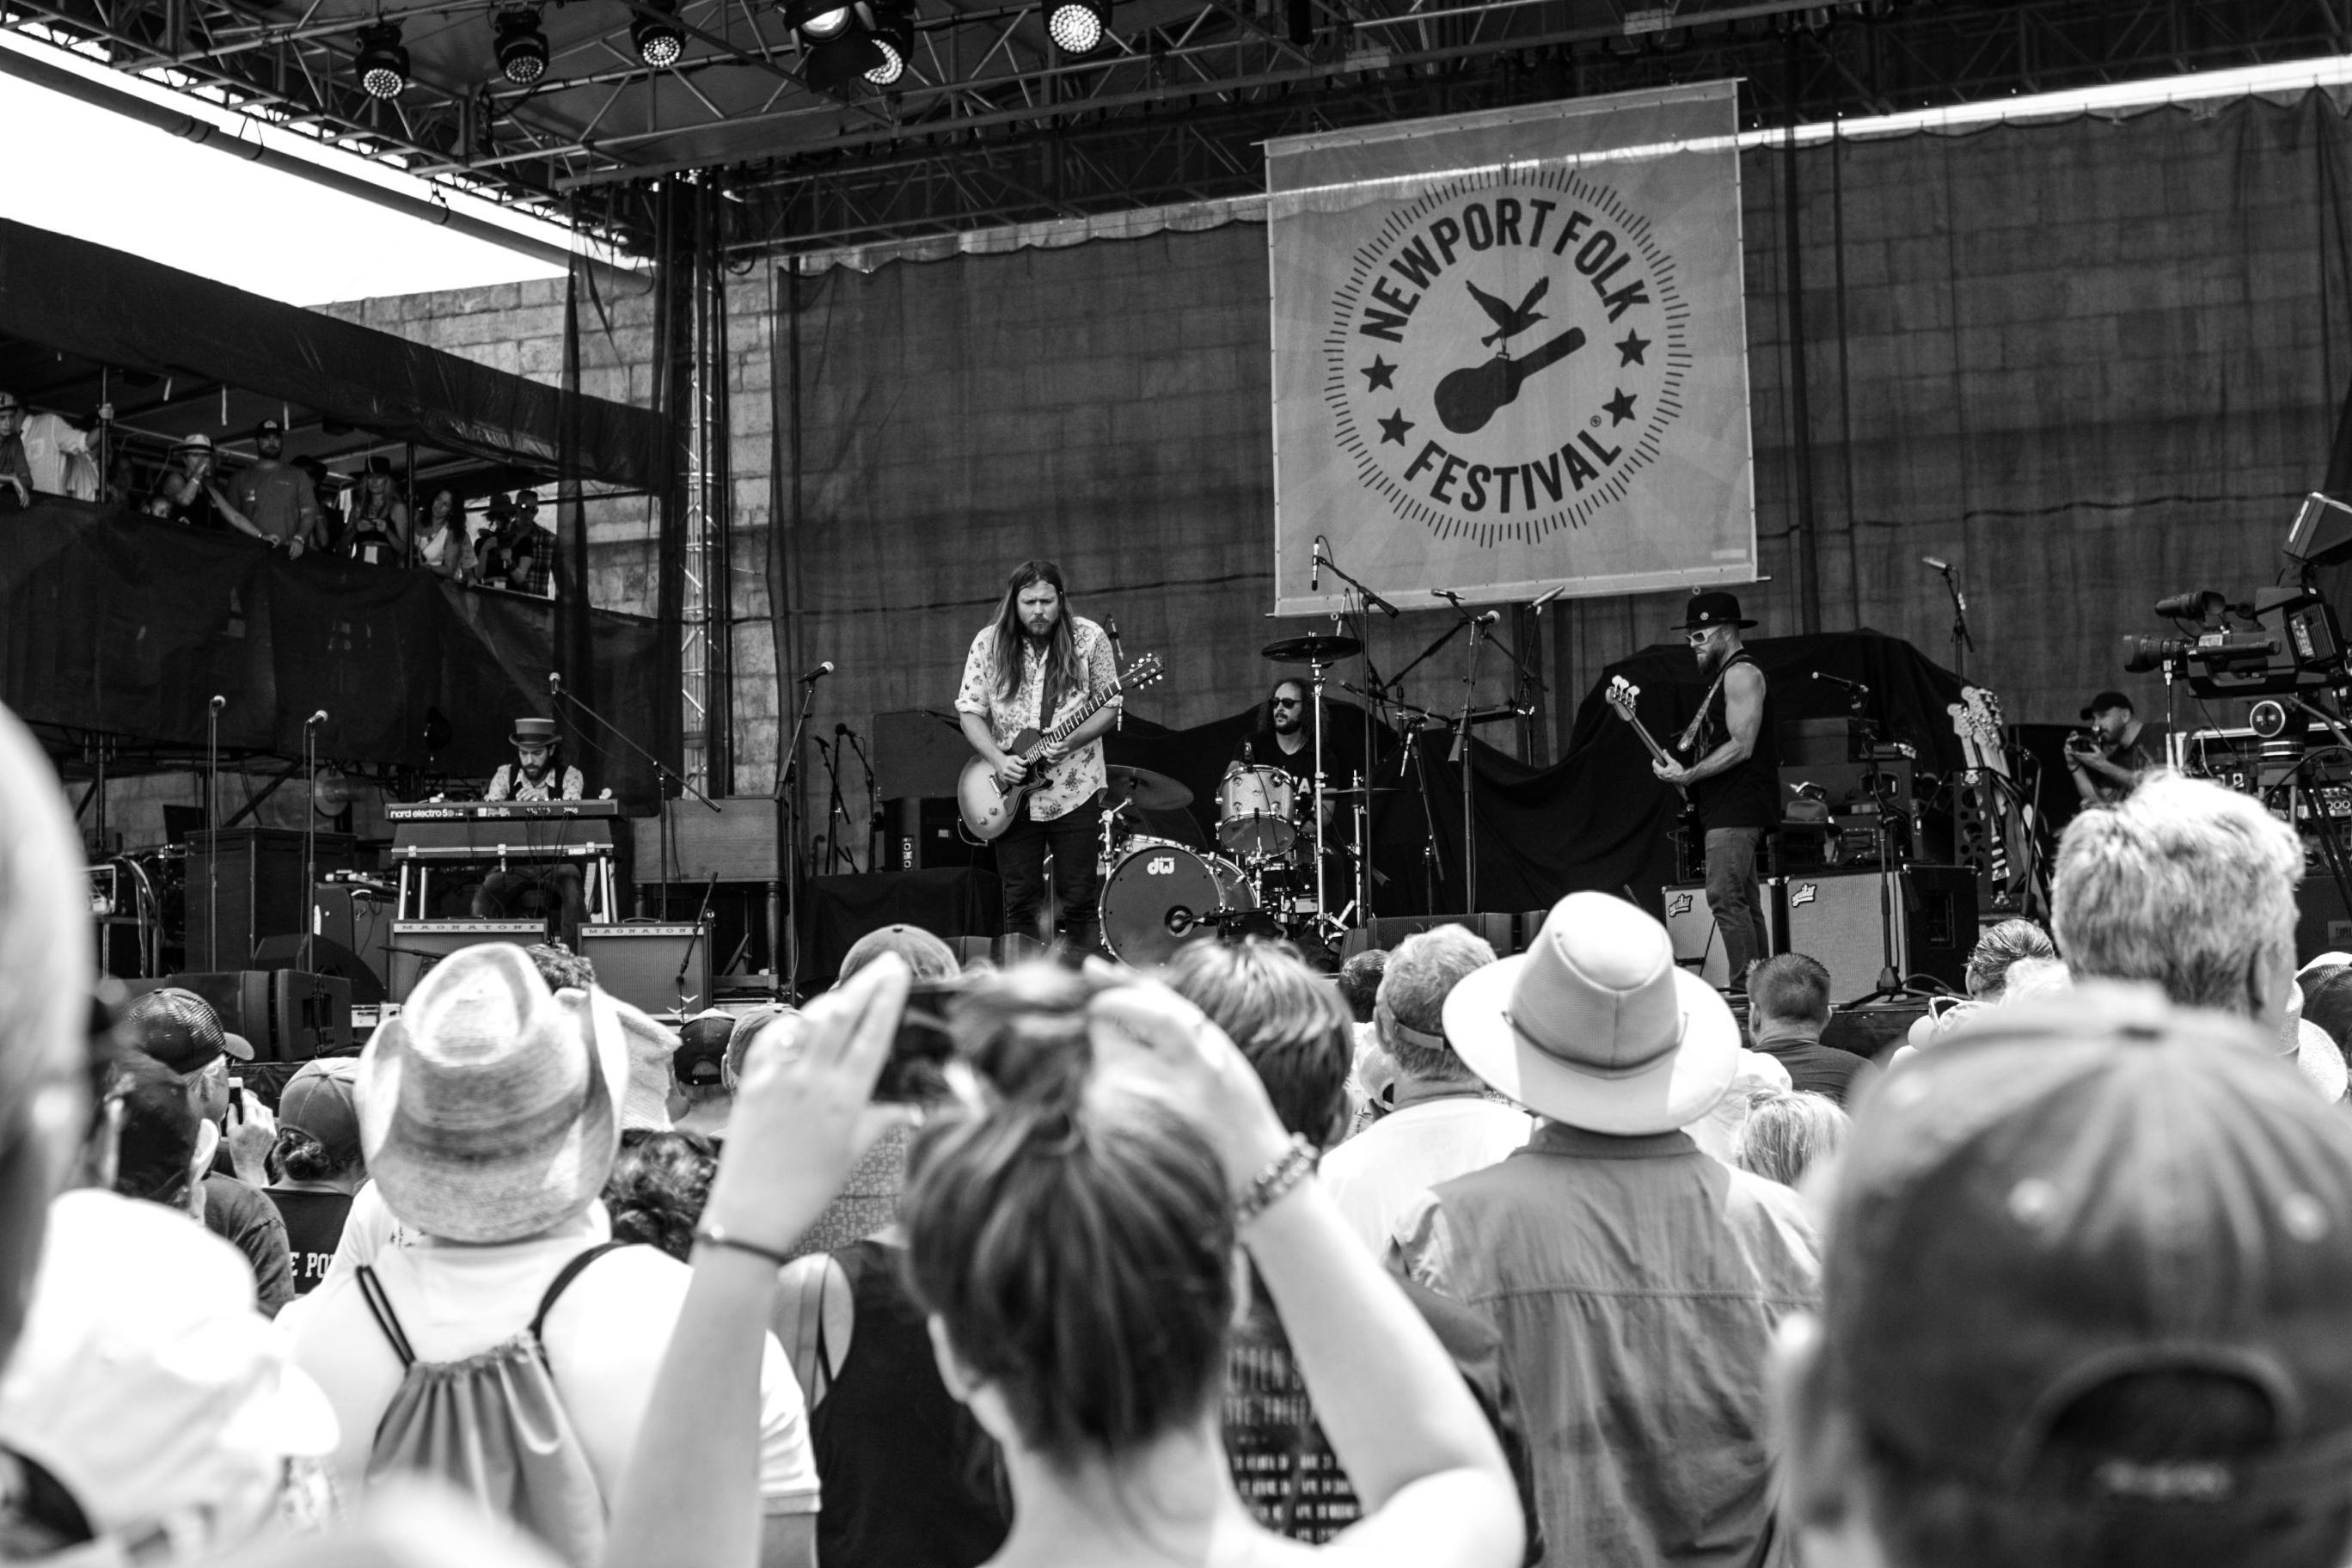 Tickets for 2019 Newport Folk Festival will go on sale on